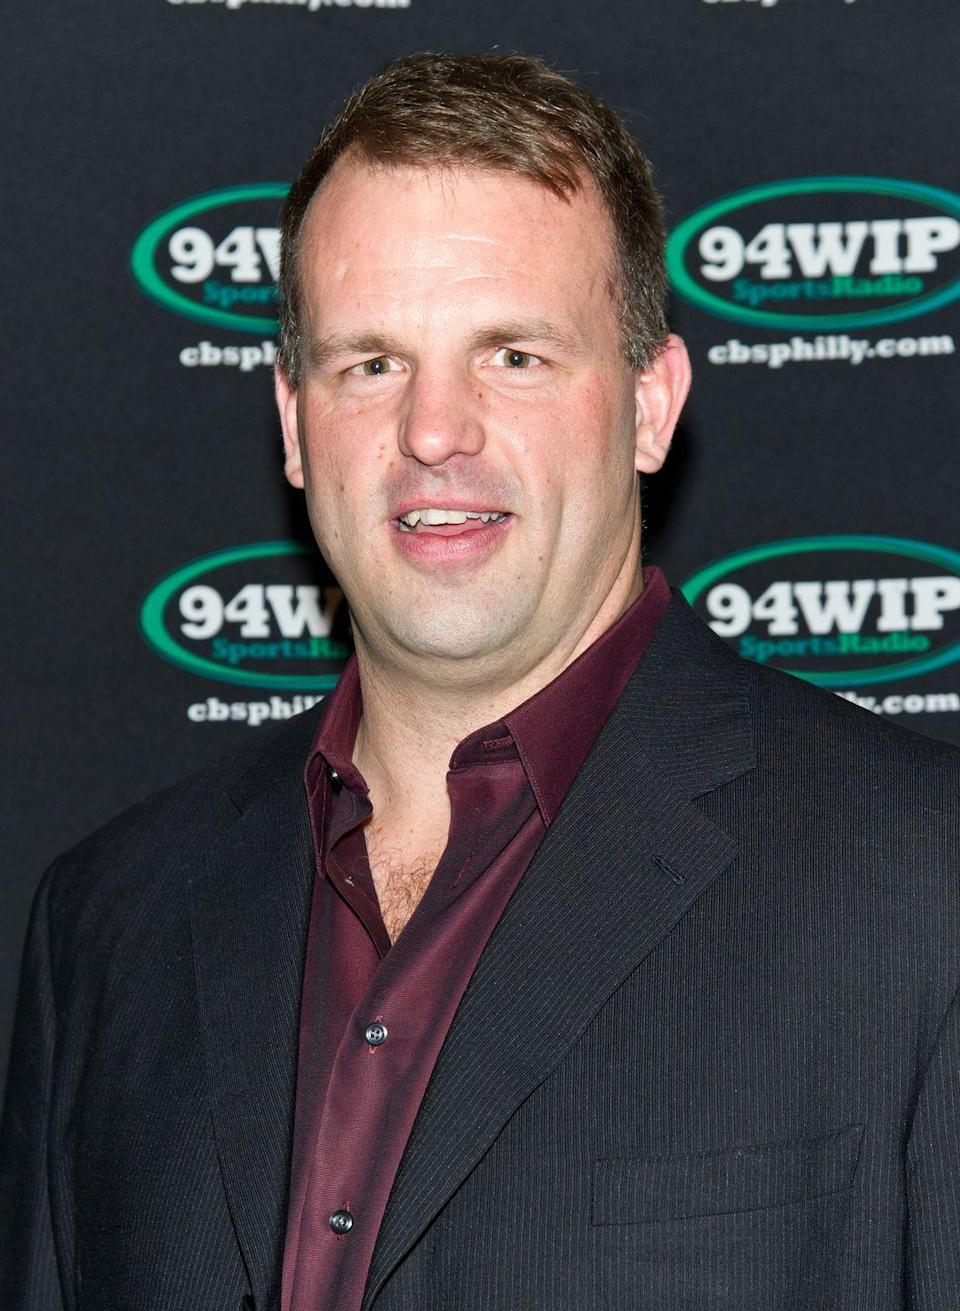 <p>NFL offensive lineman, Jon Runyan, played for the Houston Oilers, the Philadelphia Eagles, and the San Diego Chargers before his political ambitions. But 2010 marked Runyan's bid to serve in Congress as a representative of New Jersey's 3rd district, and he went on to successfully claim the title. He served from 2011 to 2015.</p>